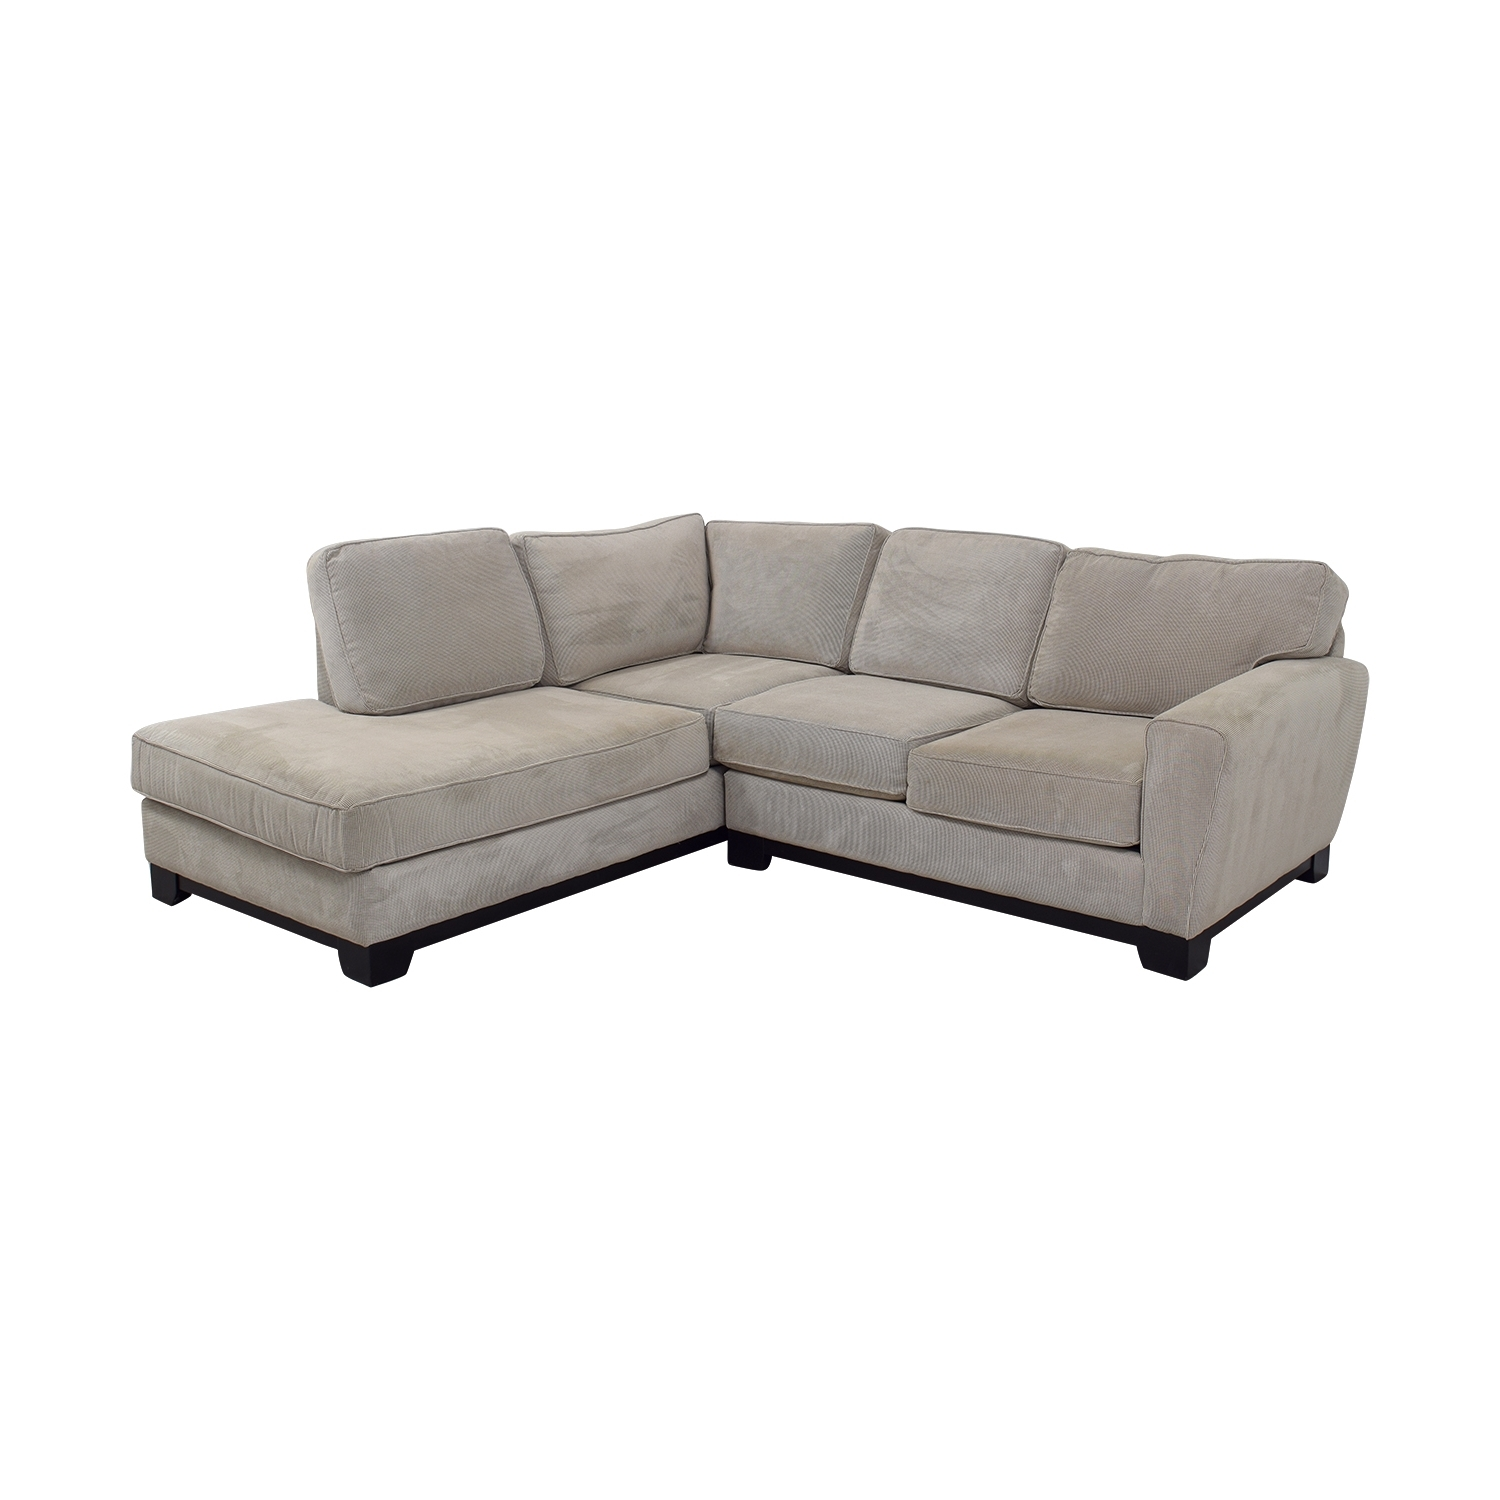 [%82% Off – Jordan's Furniture Jordan's Furniture Beige L Shaped Inside Current Jordans Sectional Sofas|Jordans Sectional Sofas In Latest 82% Off – Jordan's Furniture Jordan's Furniture Beige L Shaped|Most Current Jordans Sectional Sofas Within 82% Off – Jordan's Furniture Jordan's Furniture Beige L Shaped|Newest 82% Off – Jordan's Furniture Jordan's Furniture Beige L Shaped Regarding Jordans Sectional Sofas%] (View 1 of 20)